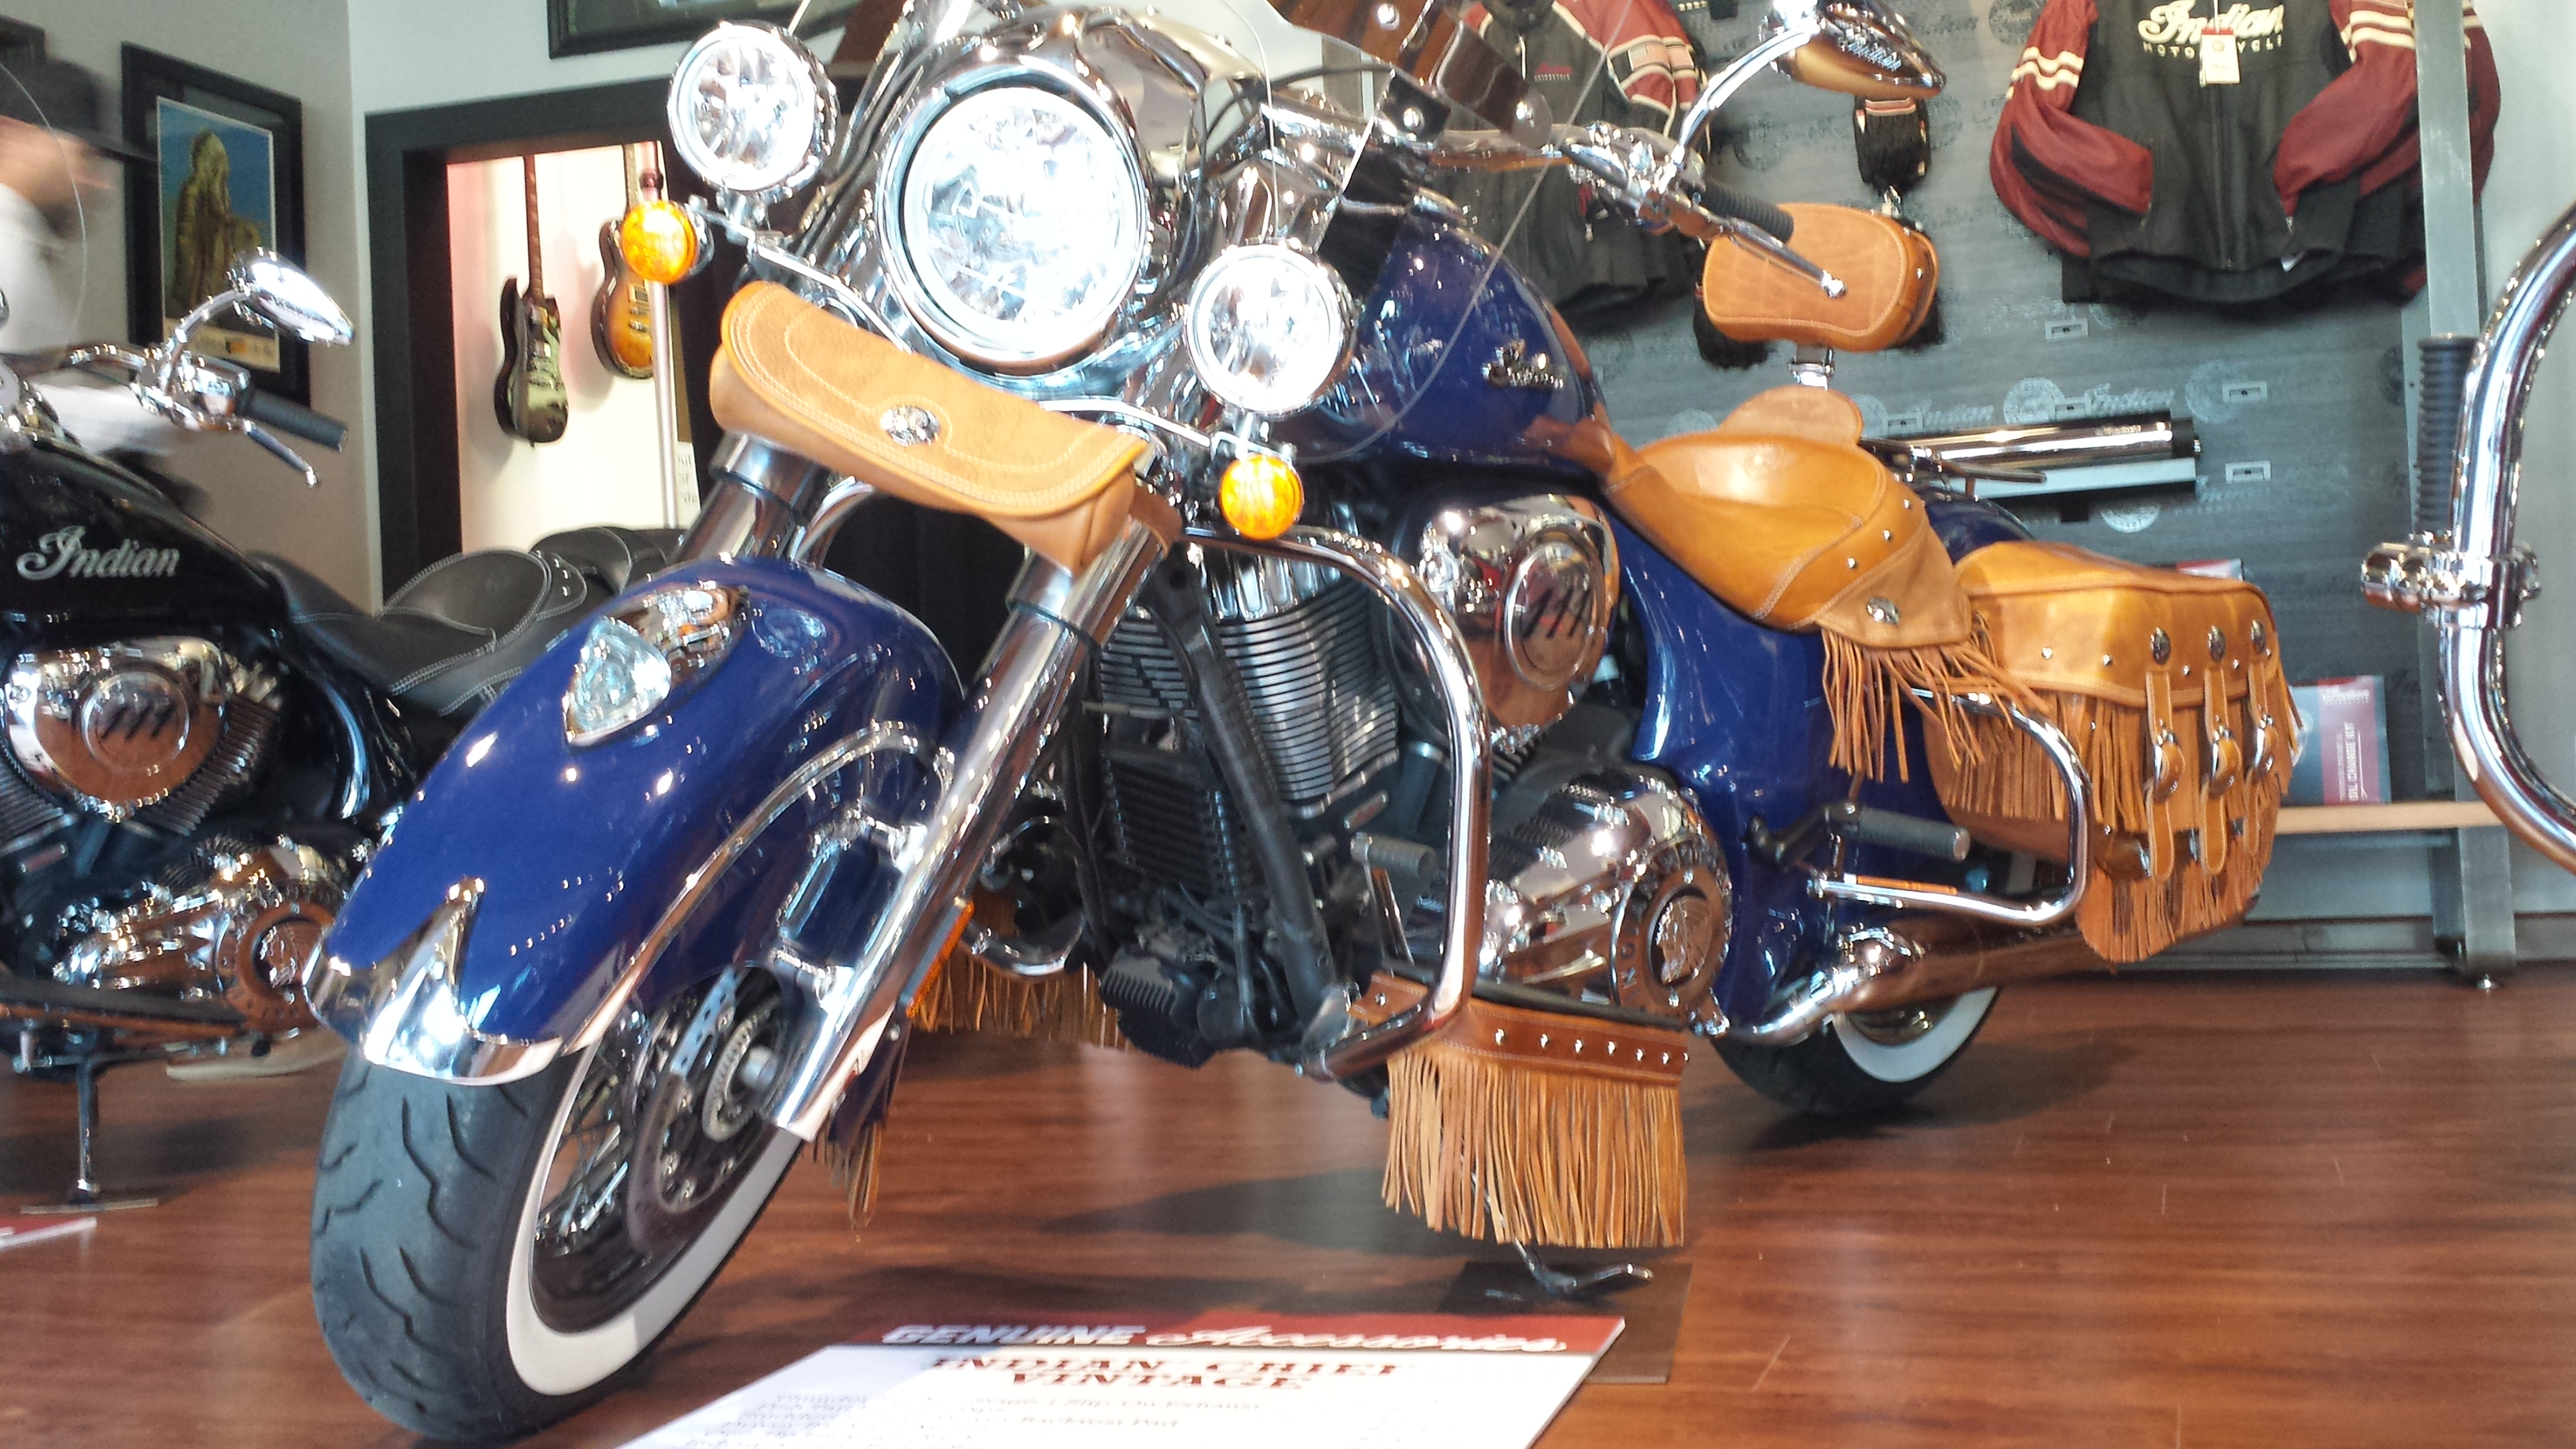 indian motorcycle accessories chief fringe apparel displays pipes exhaust floorboard stage slip suit please fitted includes which